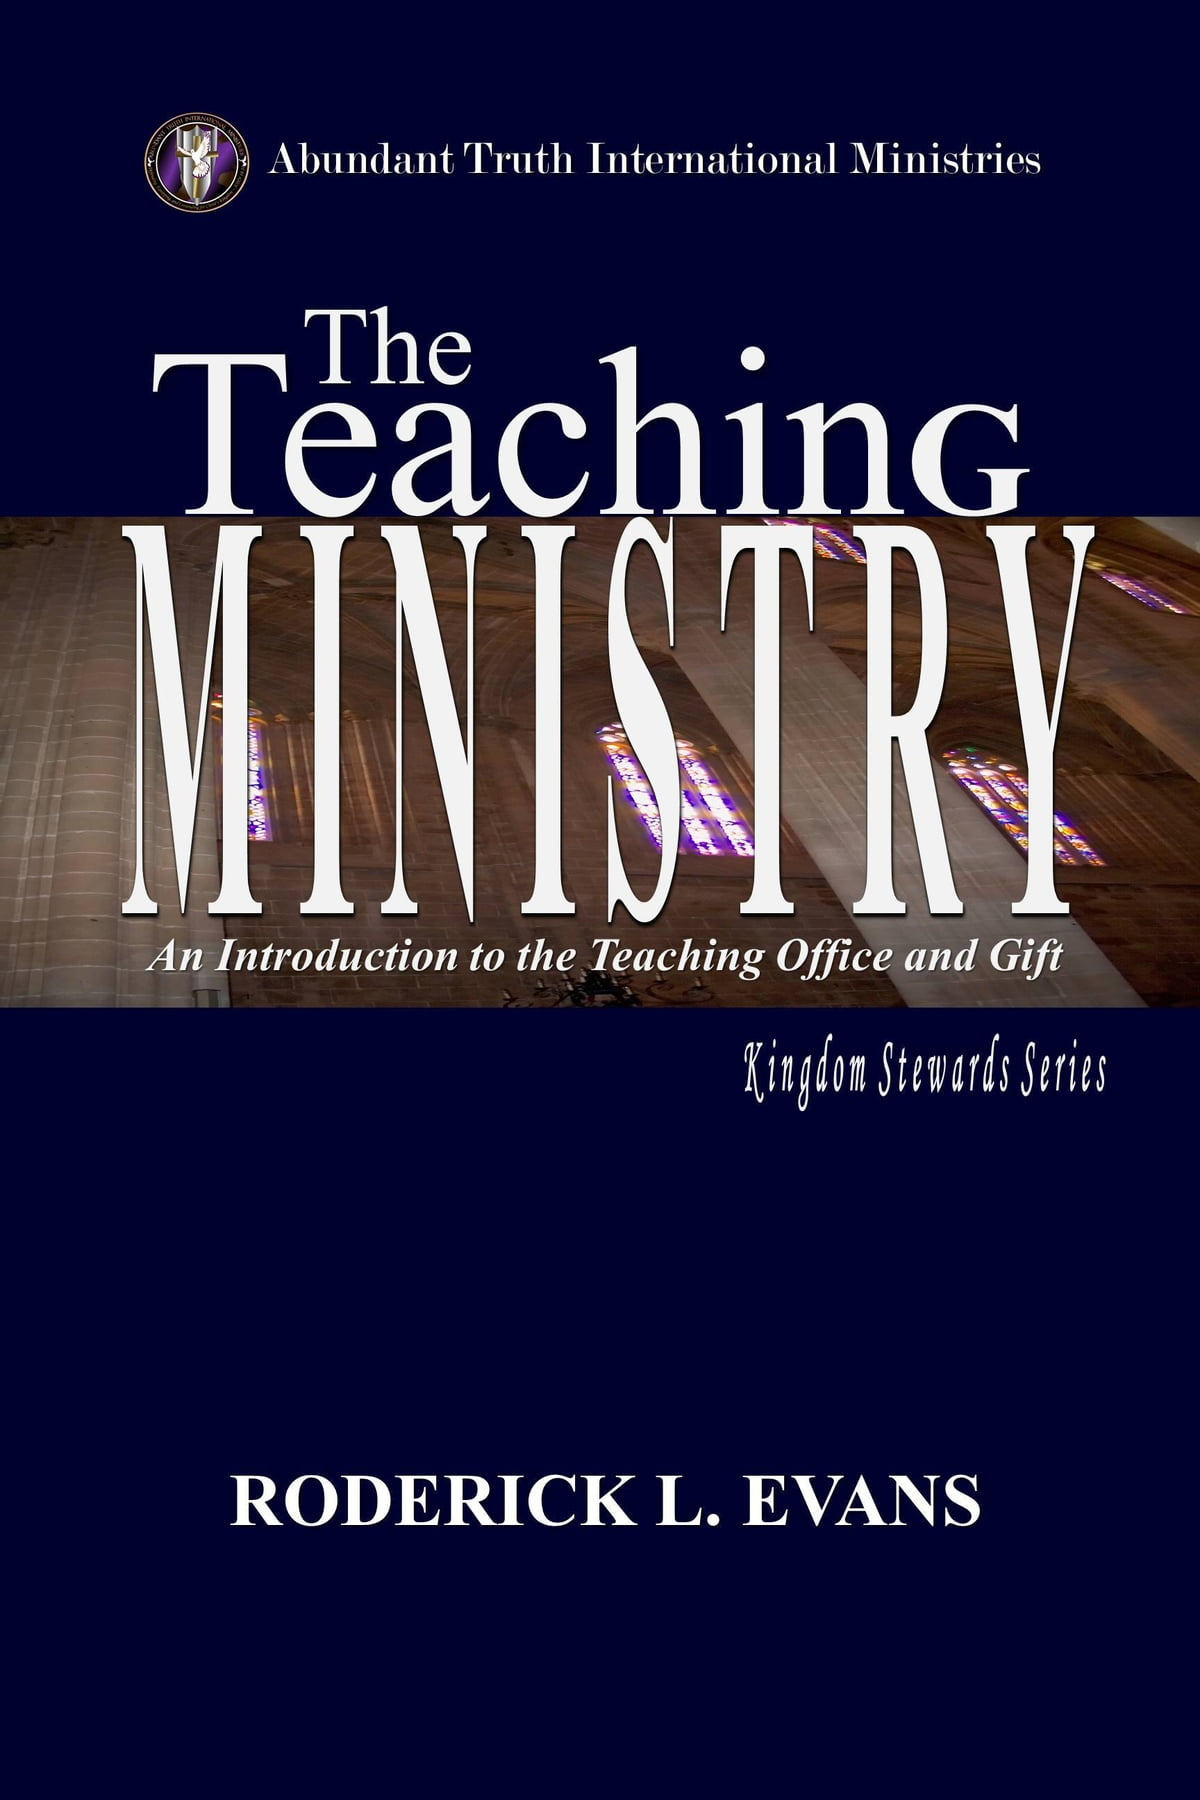 The Teaching Ministry: An Introduction to the Teaching Office and Gift  eBook by Roderick L. Evans - 9781601412461 | Rakuten Kobo